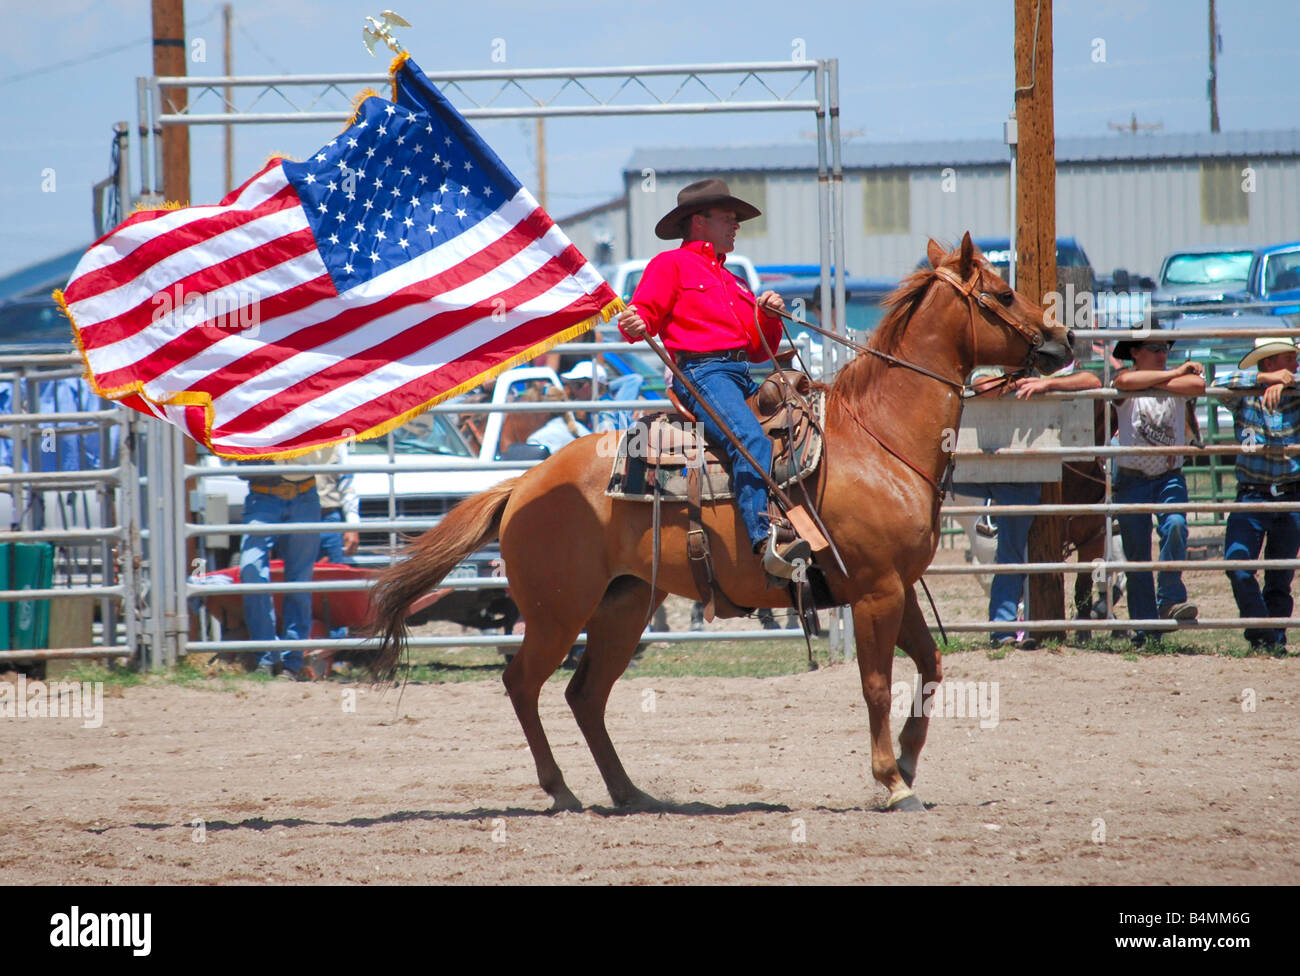 Cowboy carrying an American flag while riding on a horse at a rodeo - Stock Image